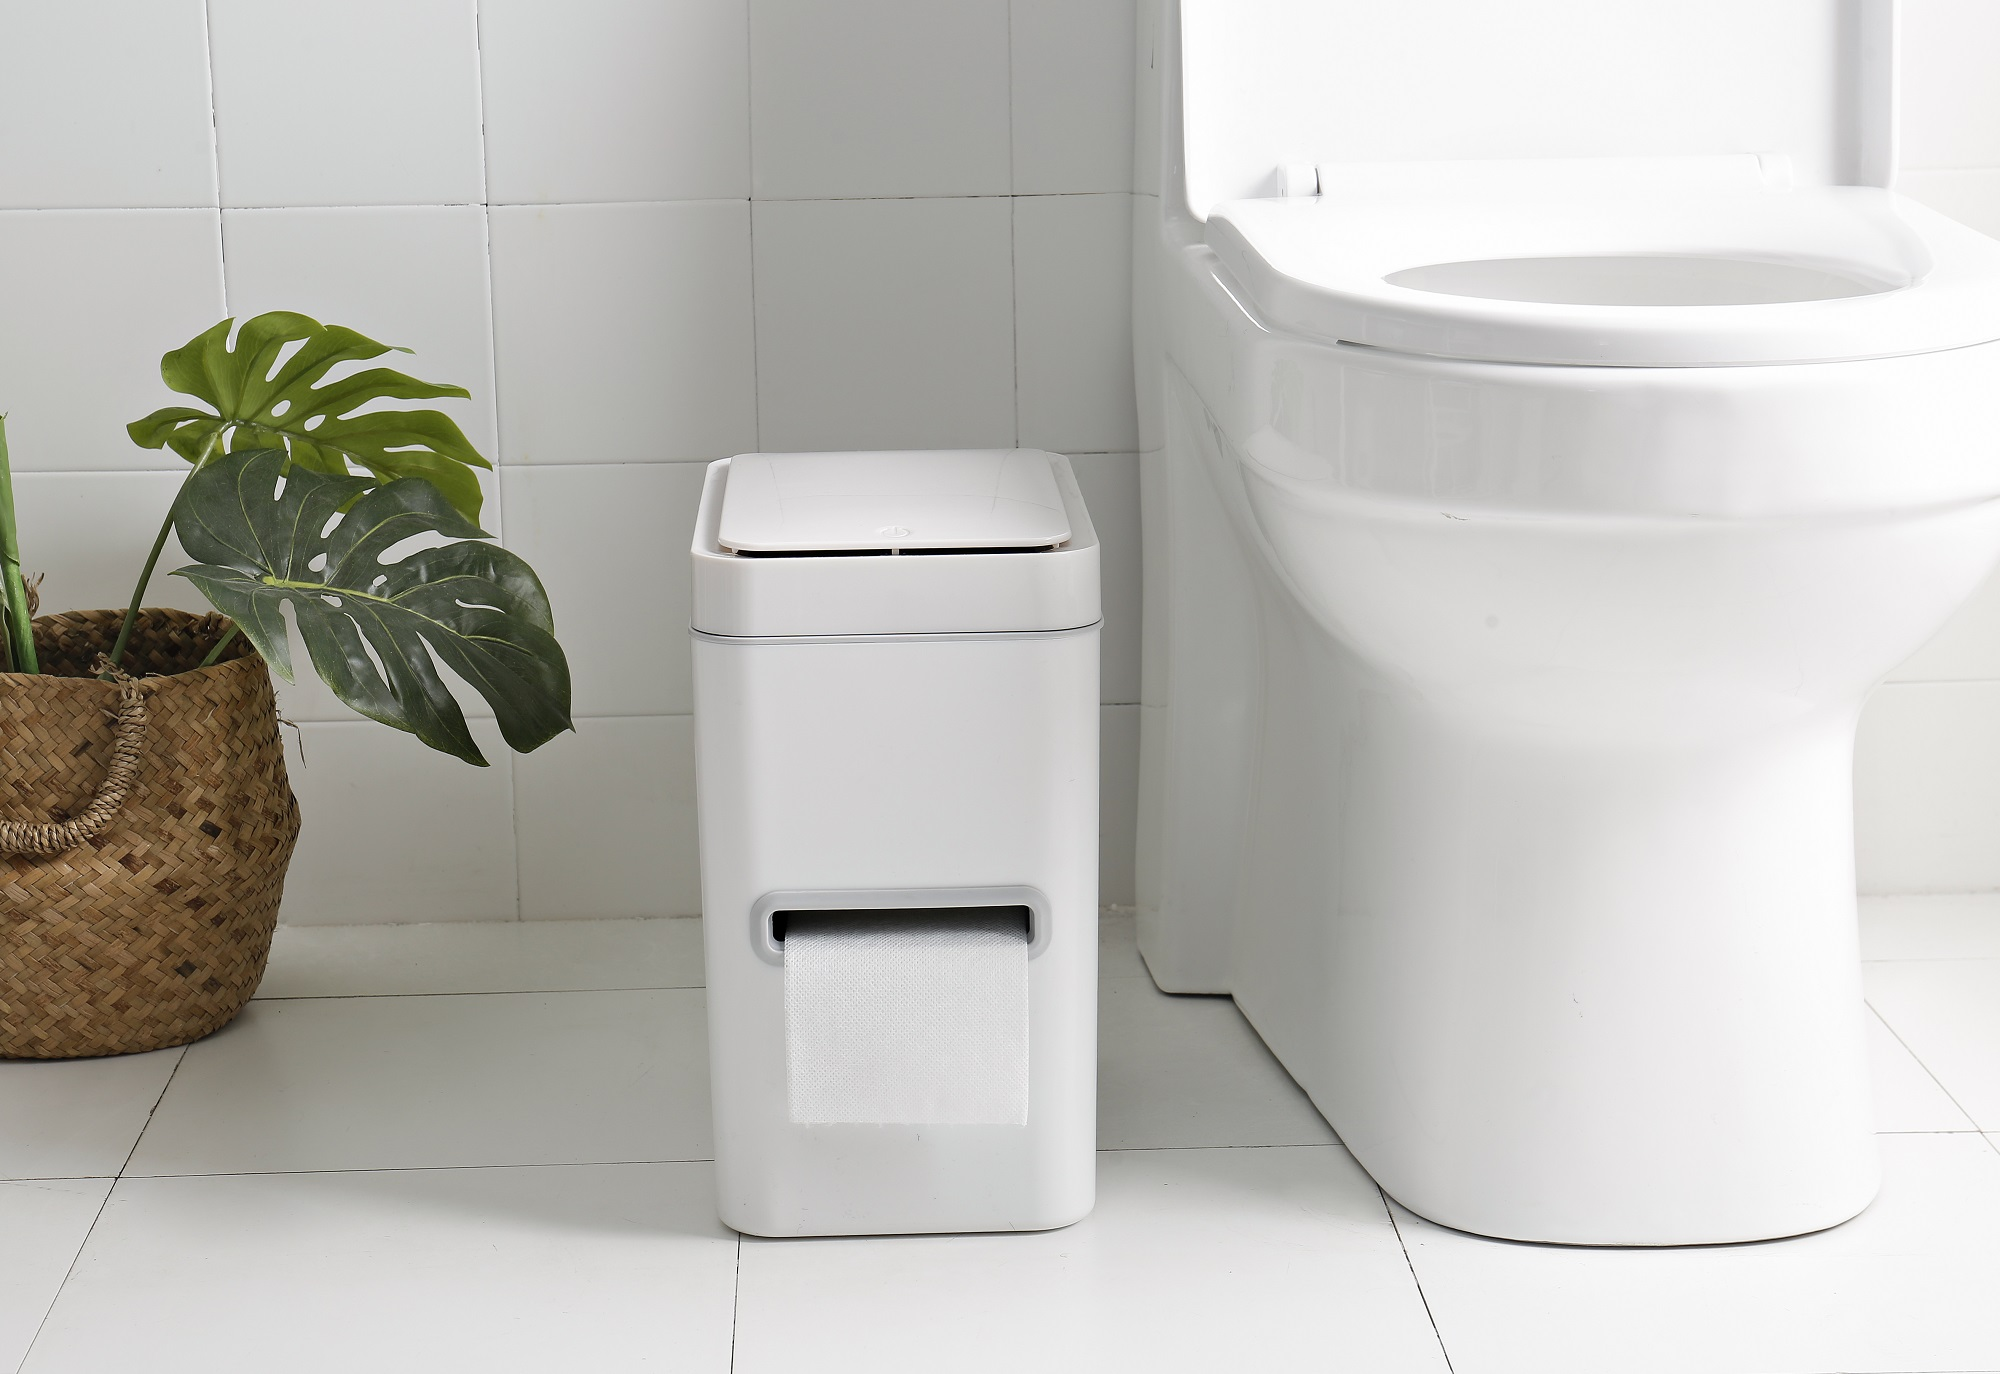 Tarsh Bin for Toilet